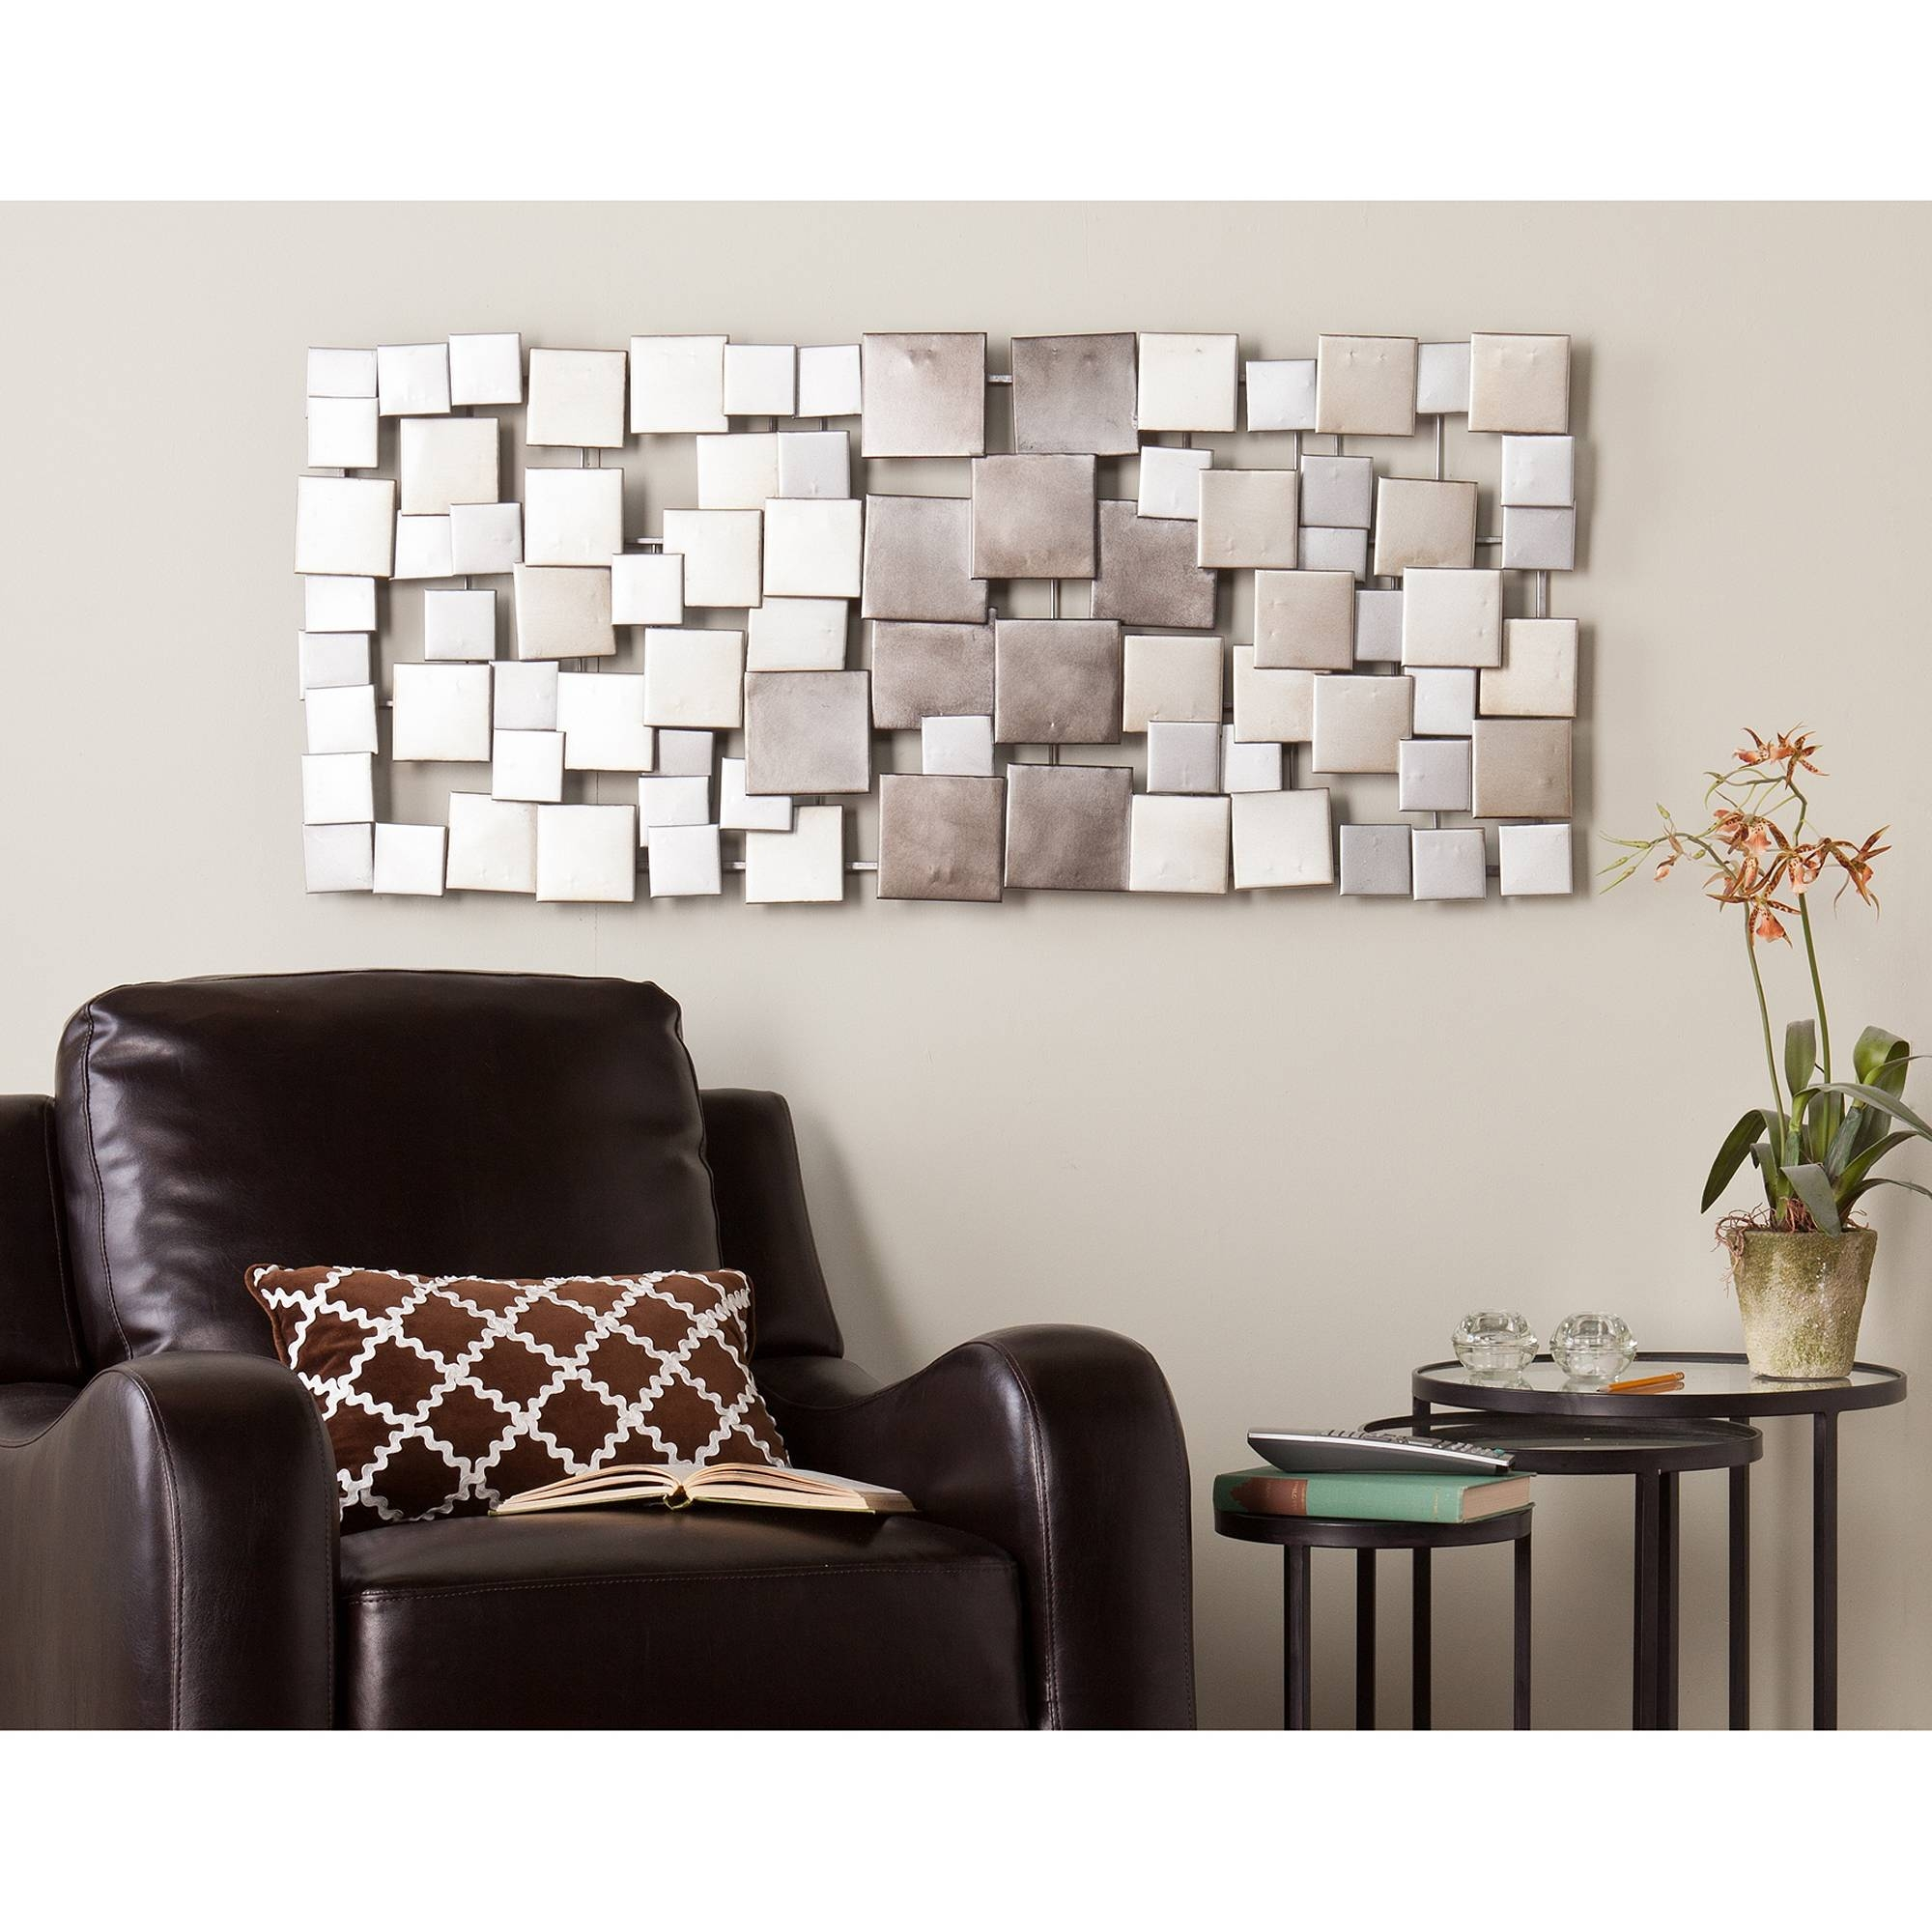 Metal Wall Art – Walmart Regarding Most Up To Date Walmart Framed Art (View 7 of 20)